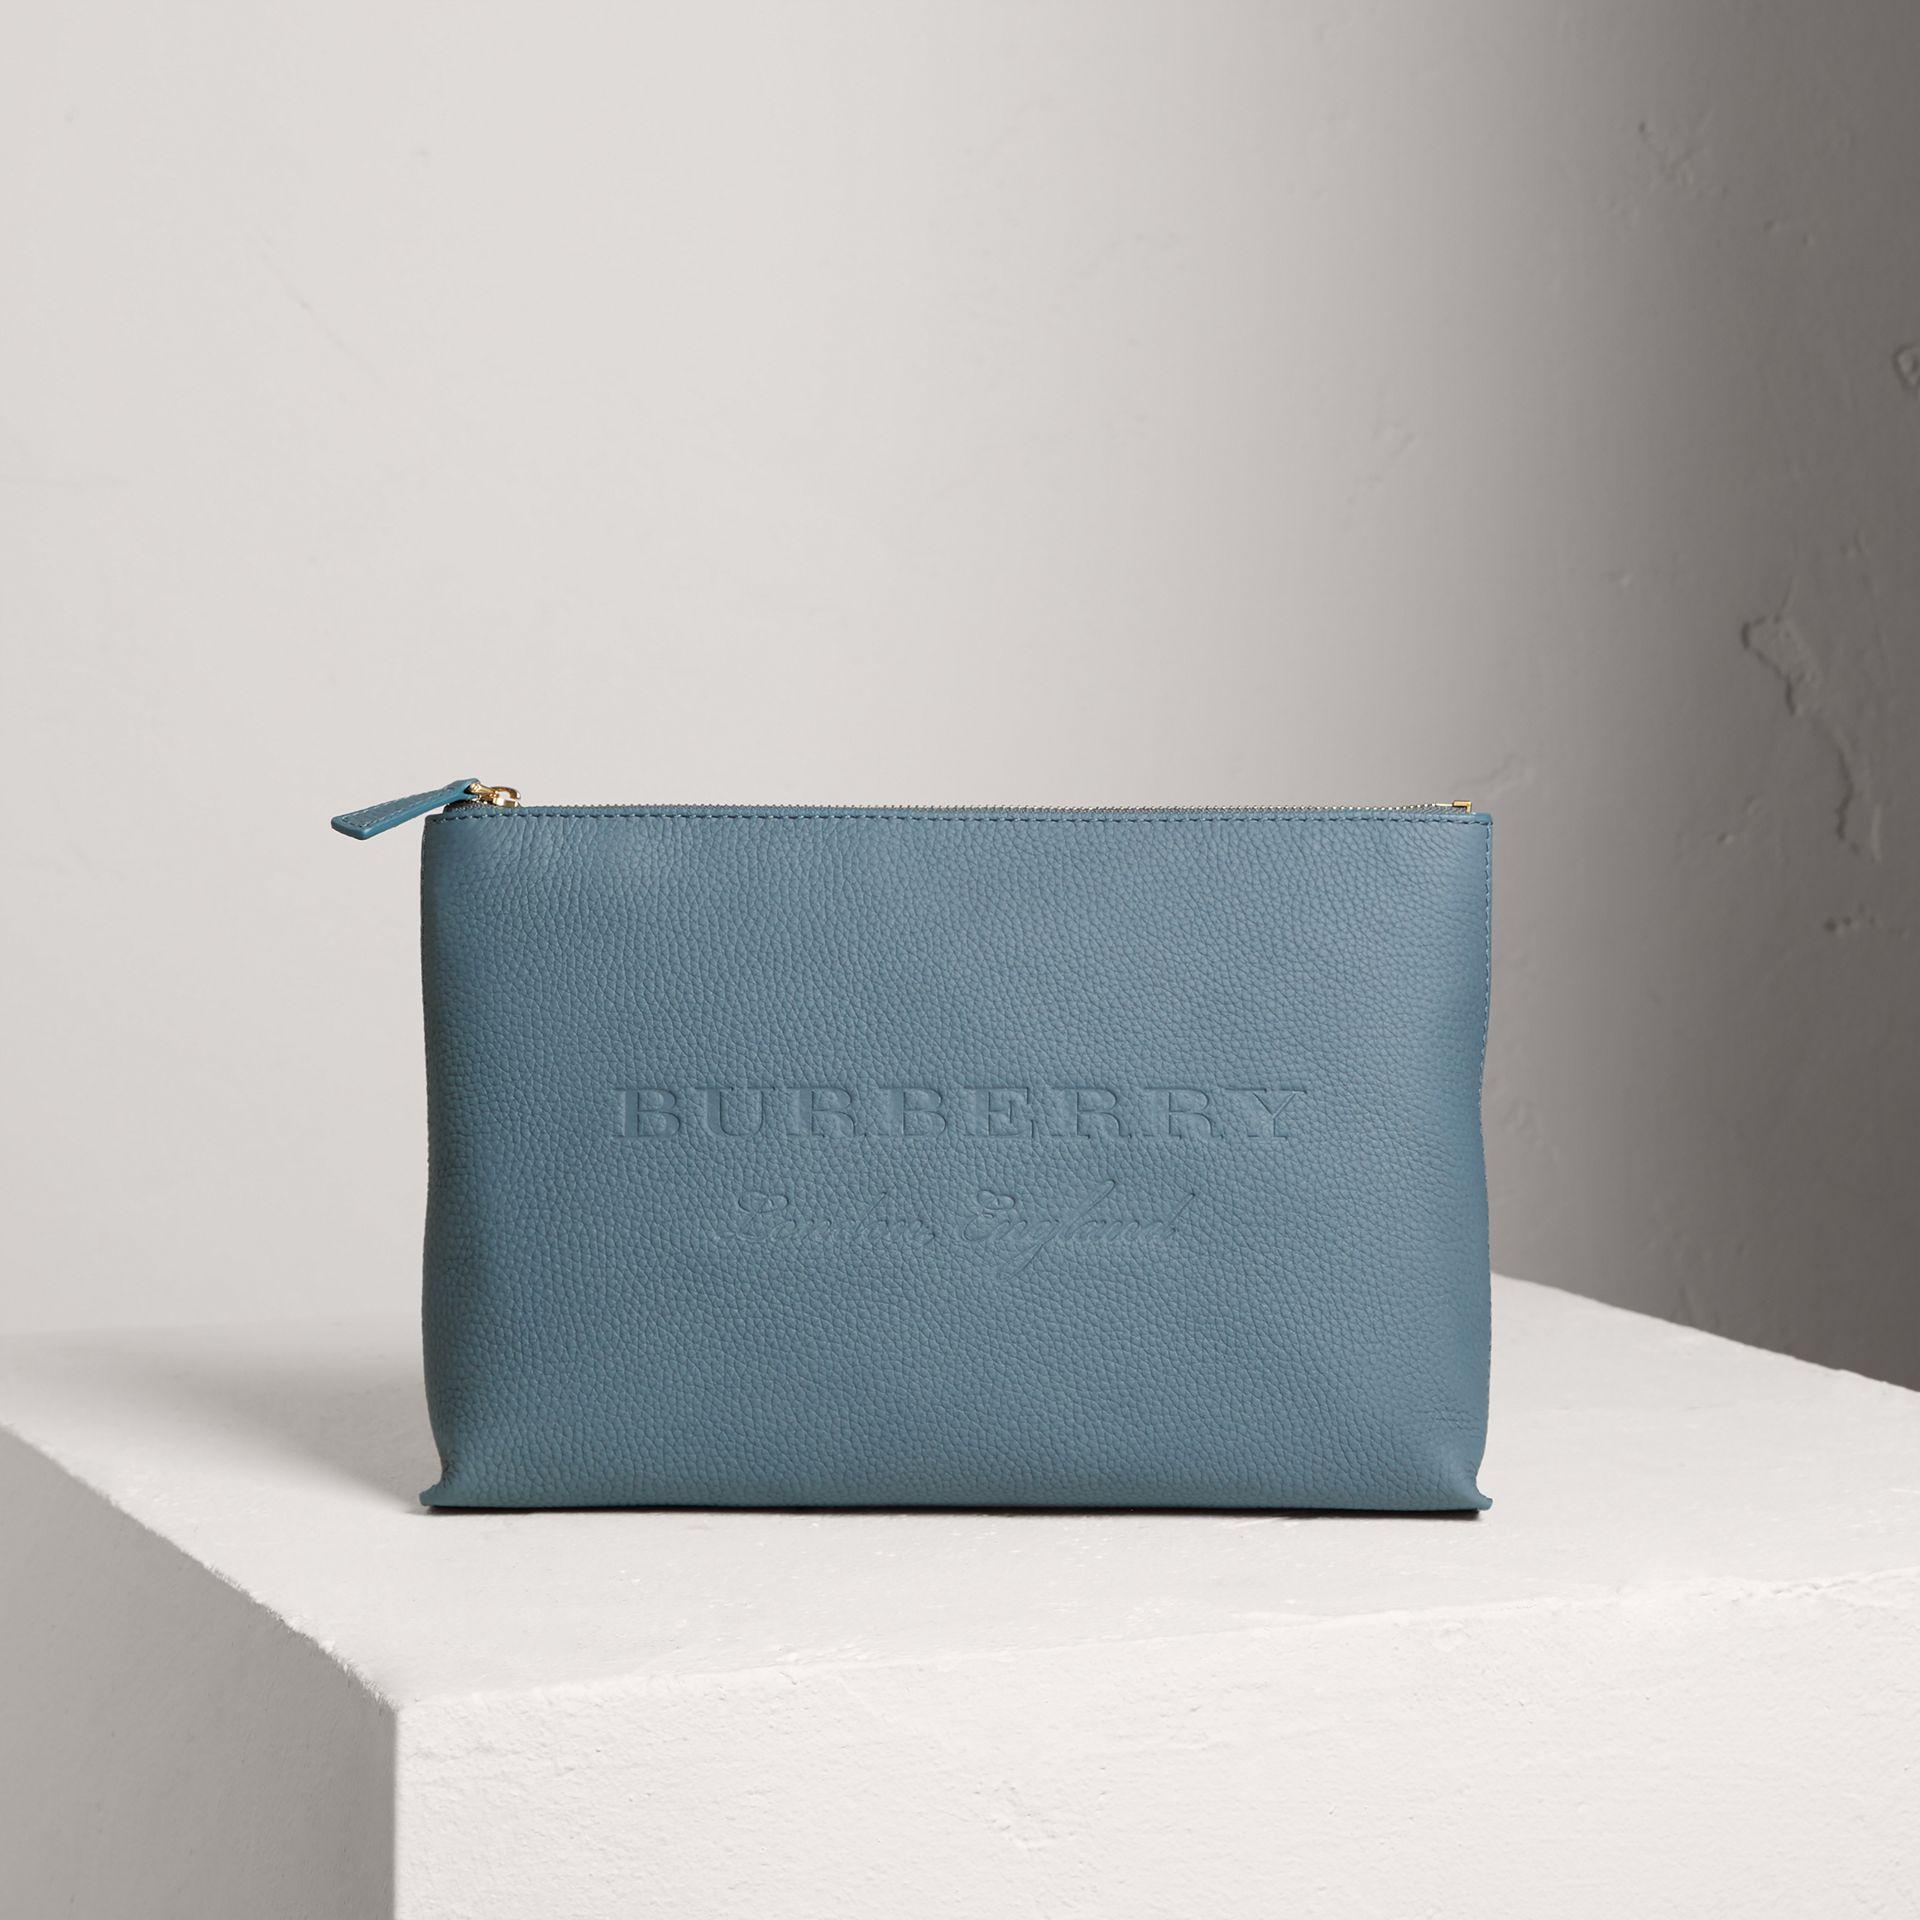 Burberry Large Embossed Leather Zip Pouch In Dusty Teal Blue